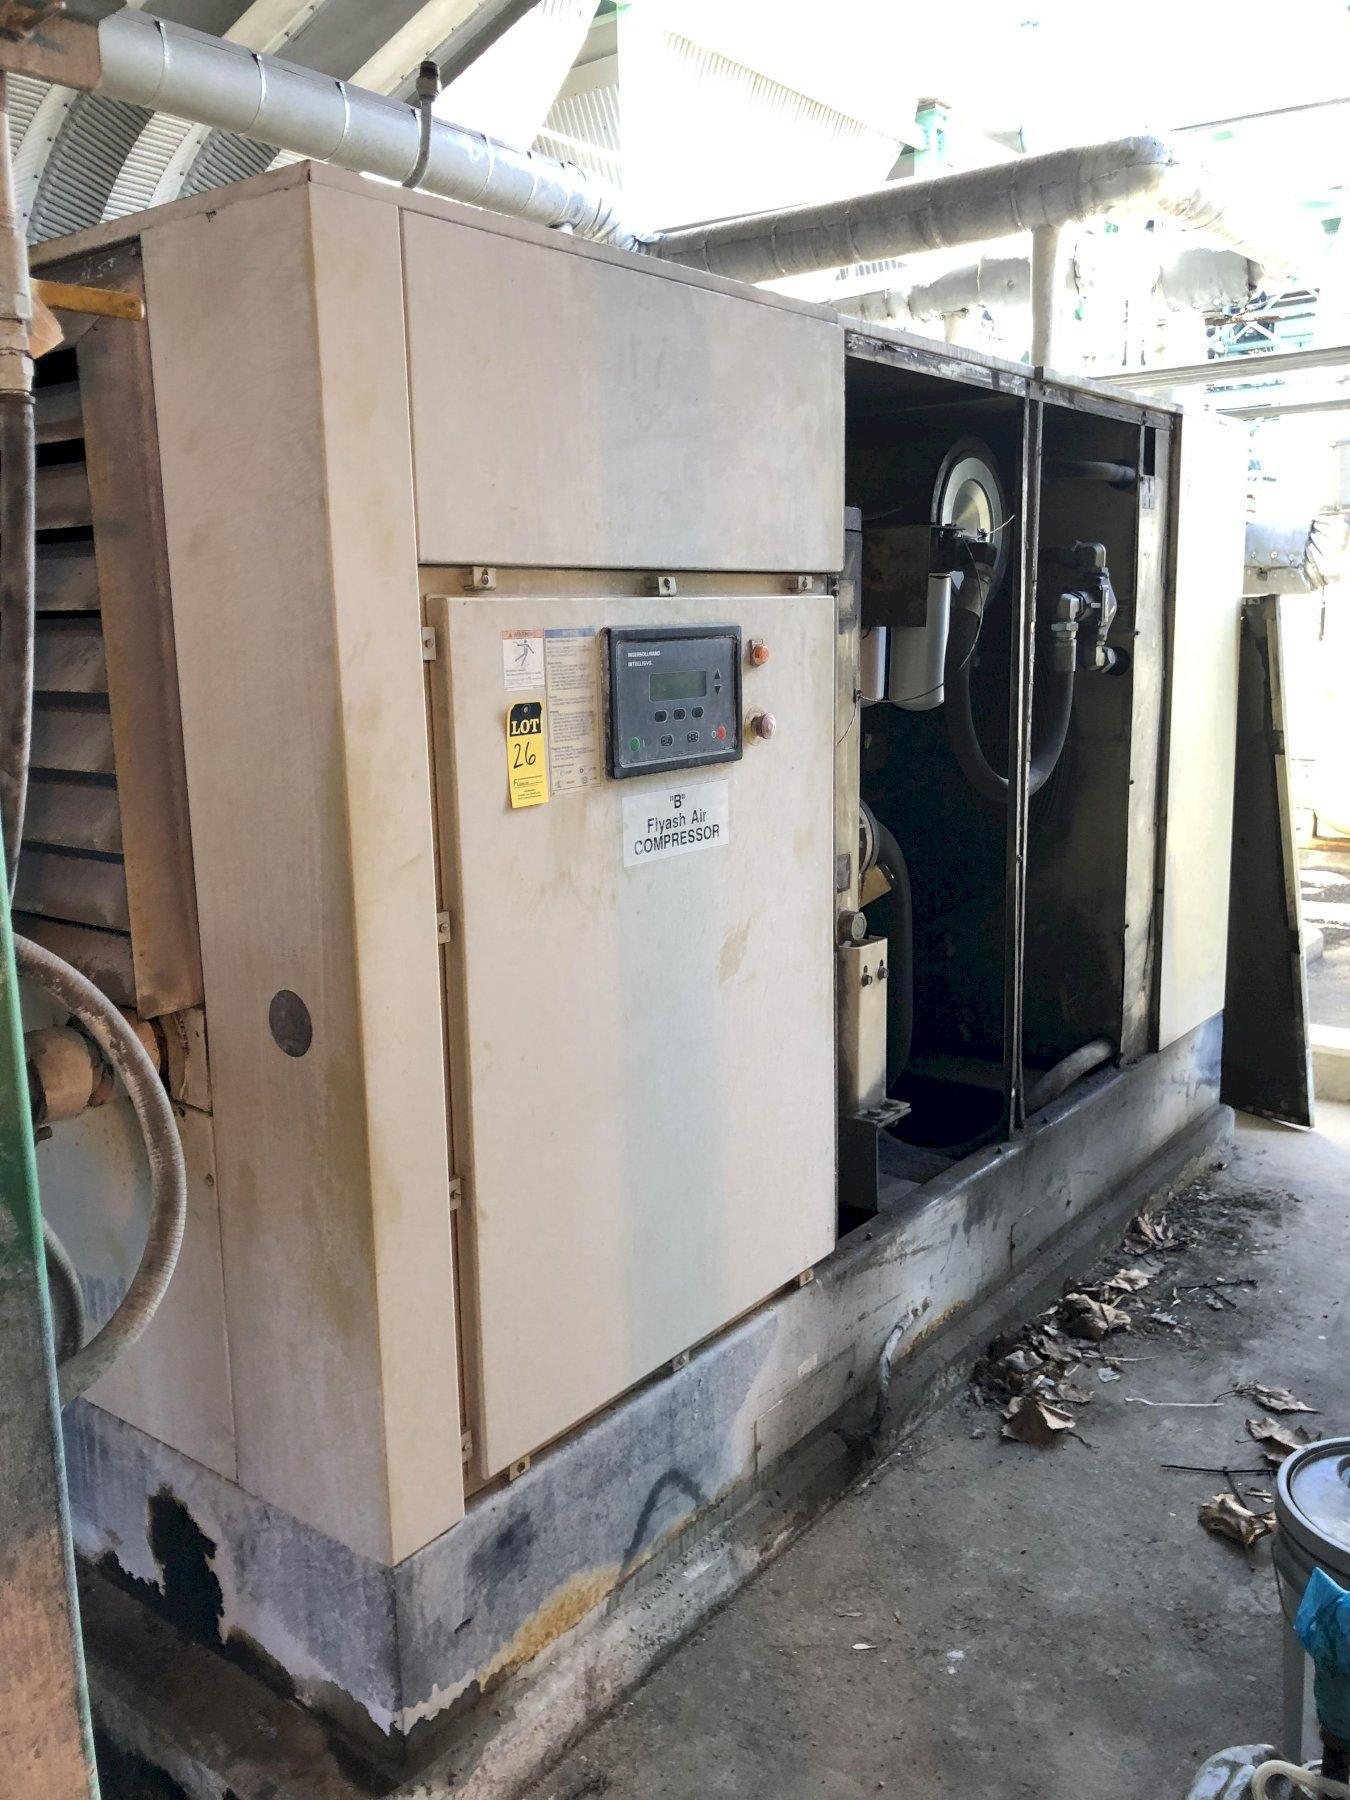 2003 Ingersol Rand model ssr-ep125 screw type air compressor s/n f38712u03125 rated at 125 hp, digital readouts